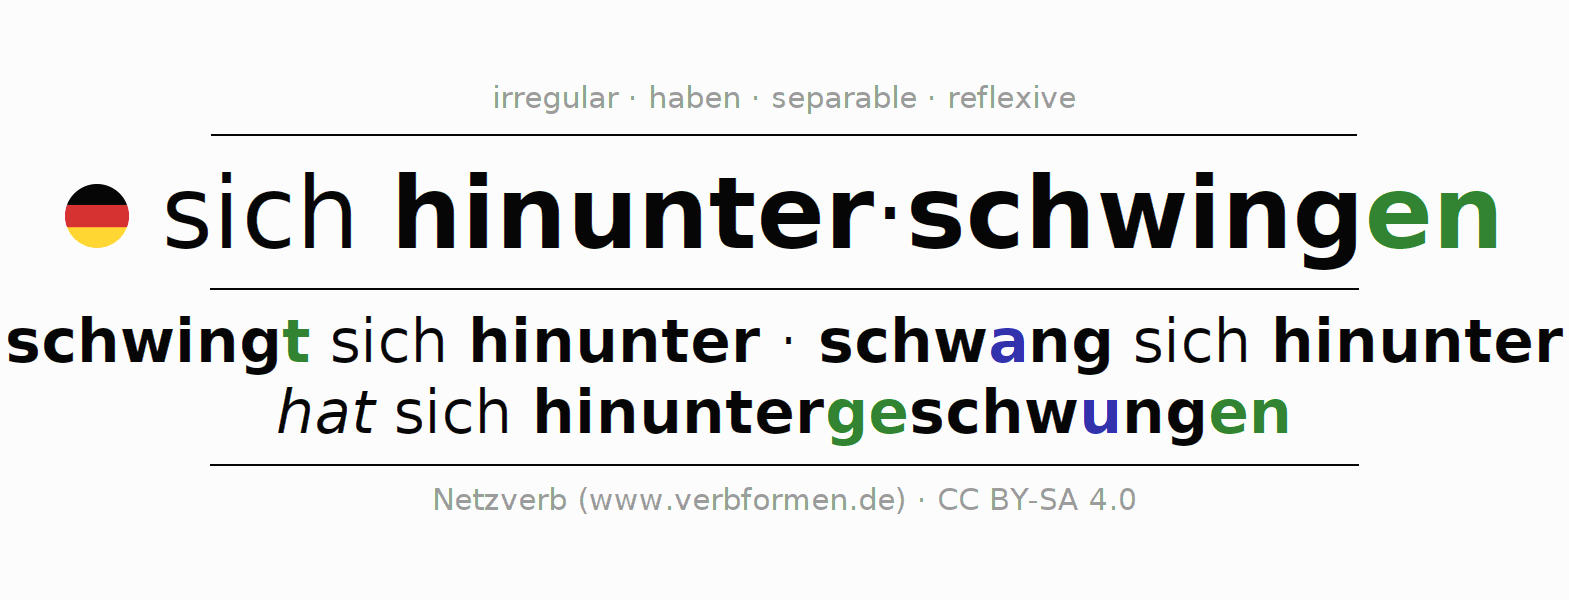 Entire conjugation of the German verb sich hinunterschwingen (hat). All tenses and modes are clearly represented in a table.